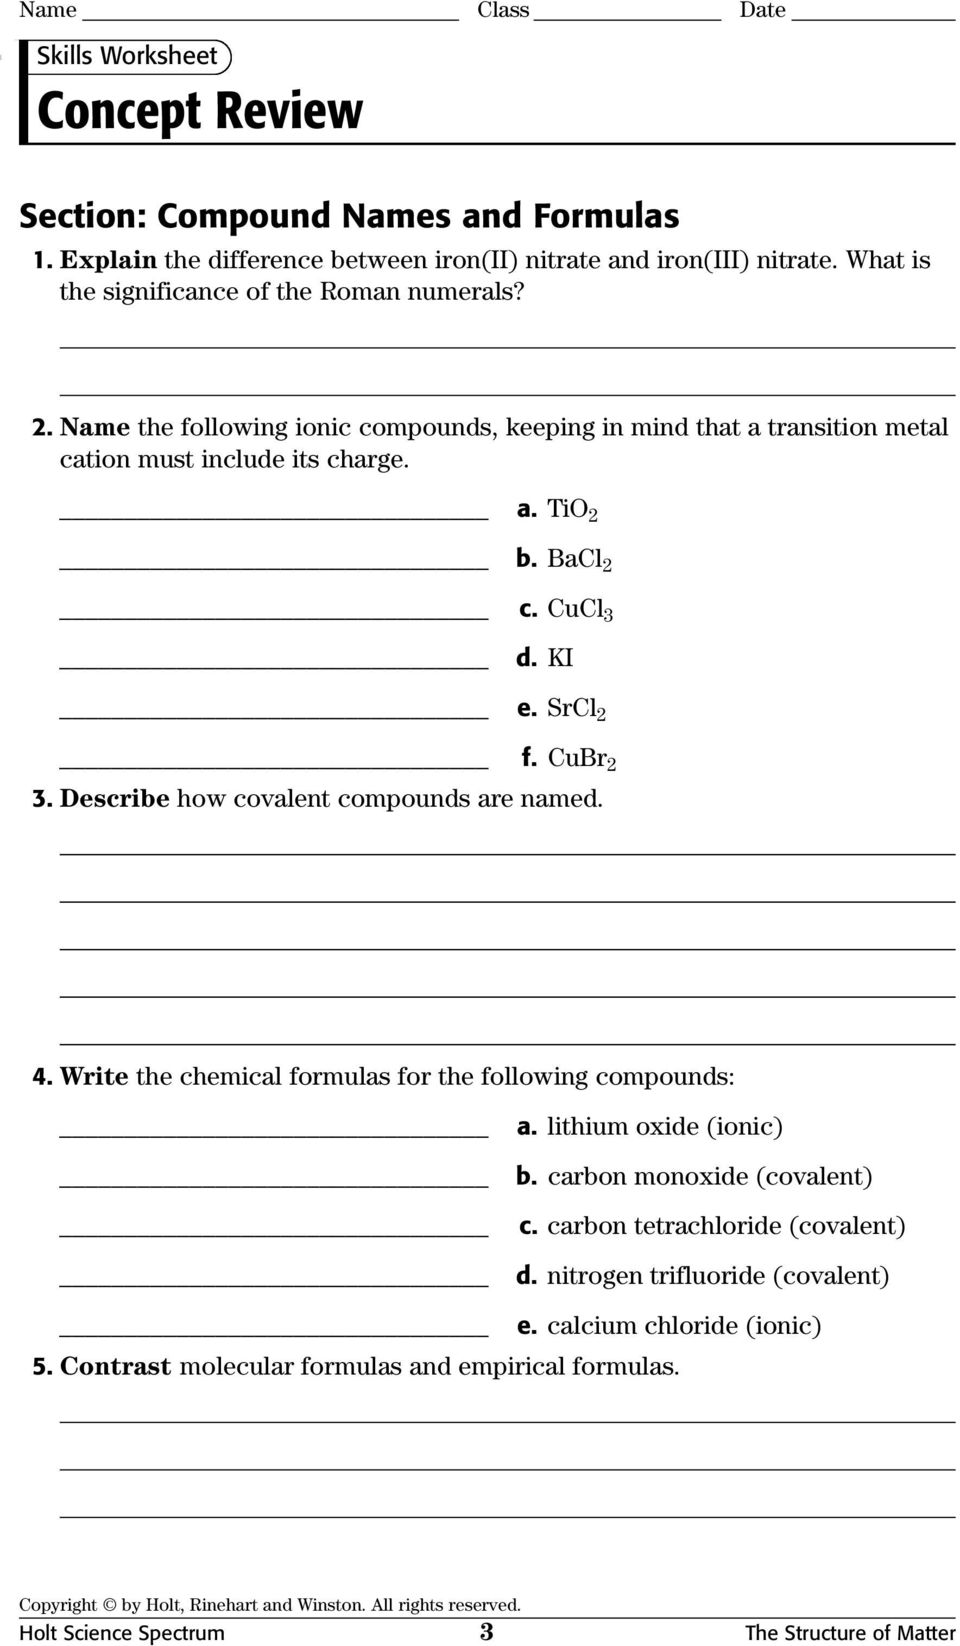 Physical Science Concept Review Worksheets With Answer Keys Pdf